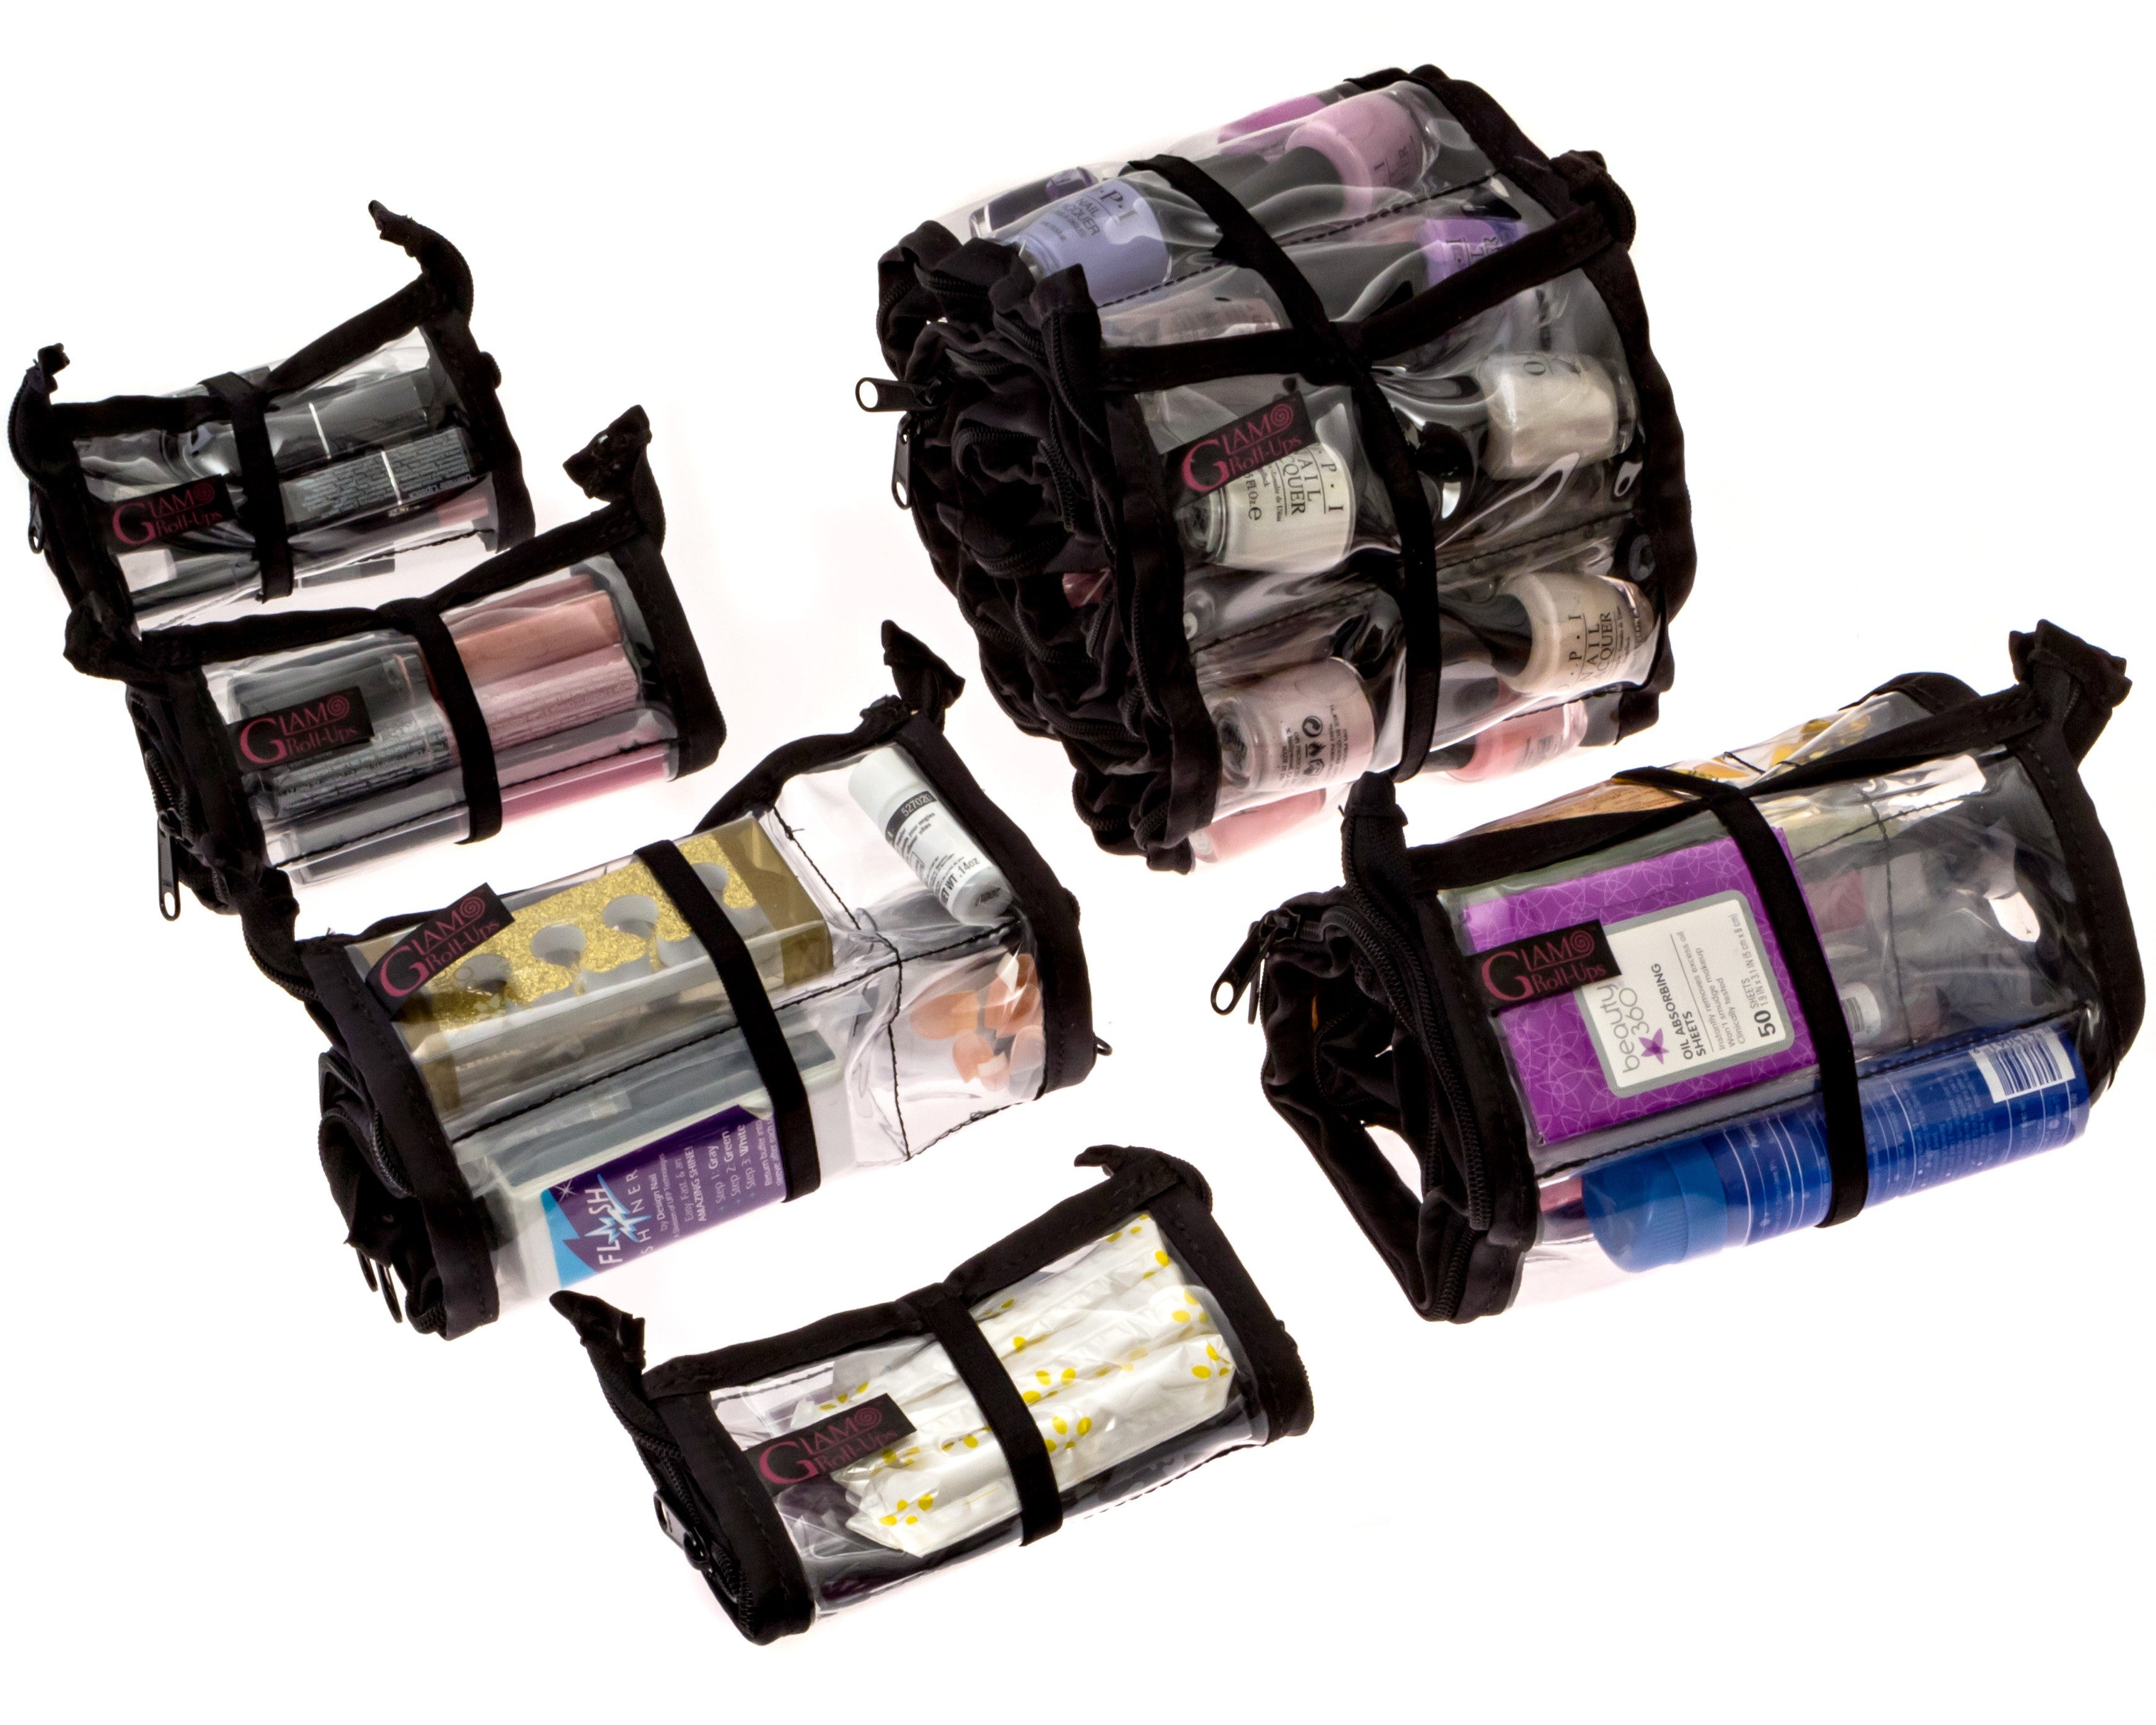 Makeup Organizer Glam Roll-Up Set of 5 Bags - Glam Roll-Ups